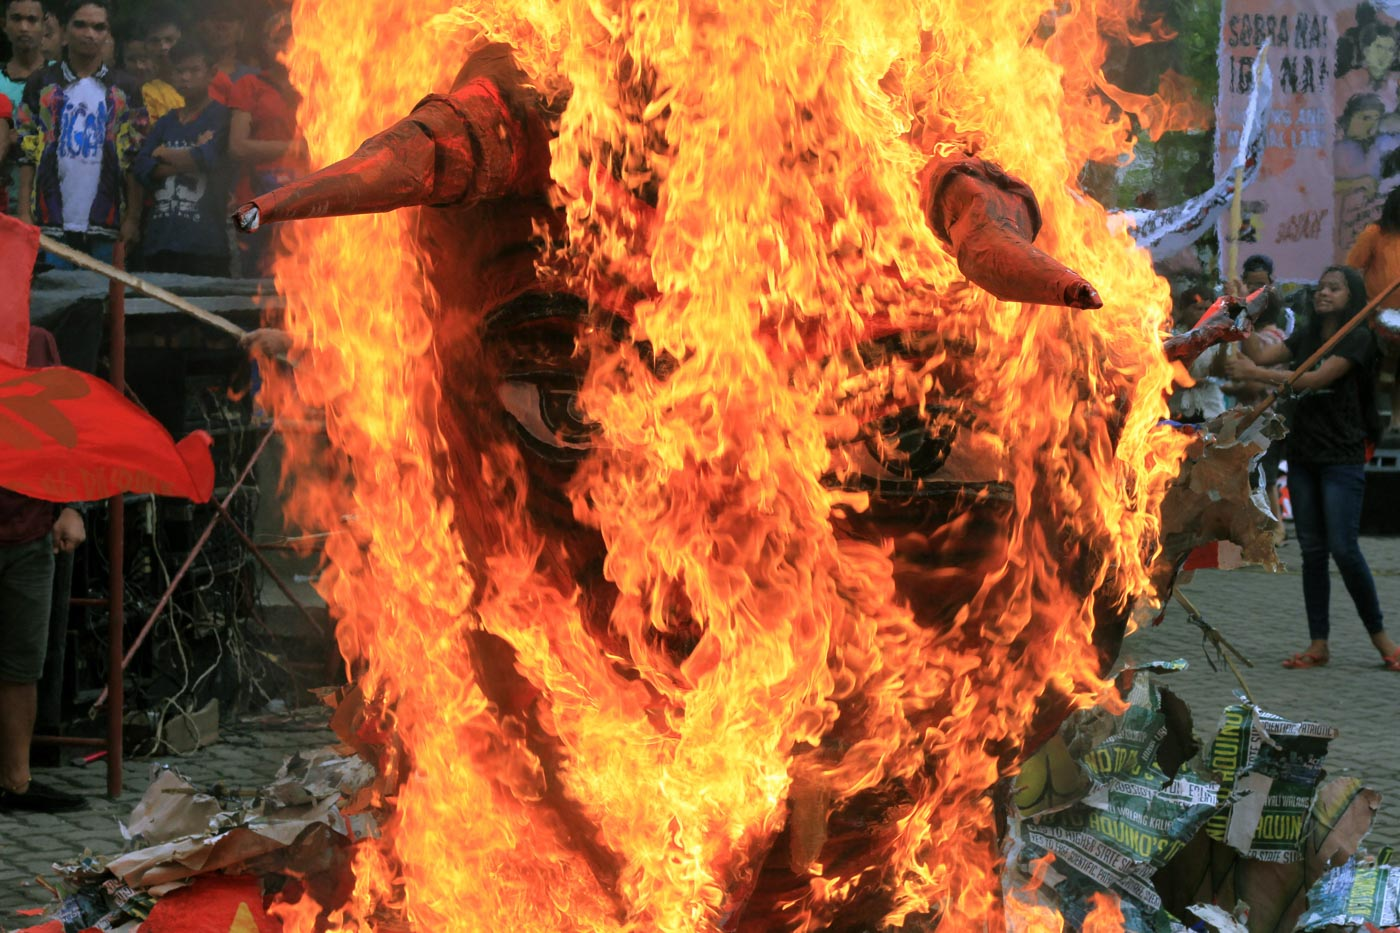 CDO EFFIGY. Hundreds of activists from Cagayan de Oro set fire the effigy of Duterte during his 3rd State of the Nation Address on Monday, July 23, 2018. Photo by Bobby Lagsa/Rappler